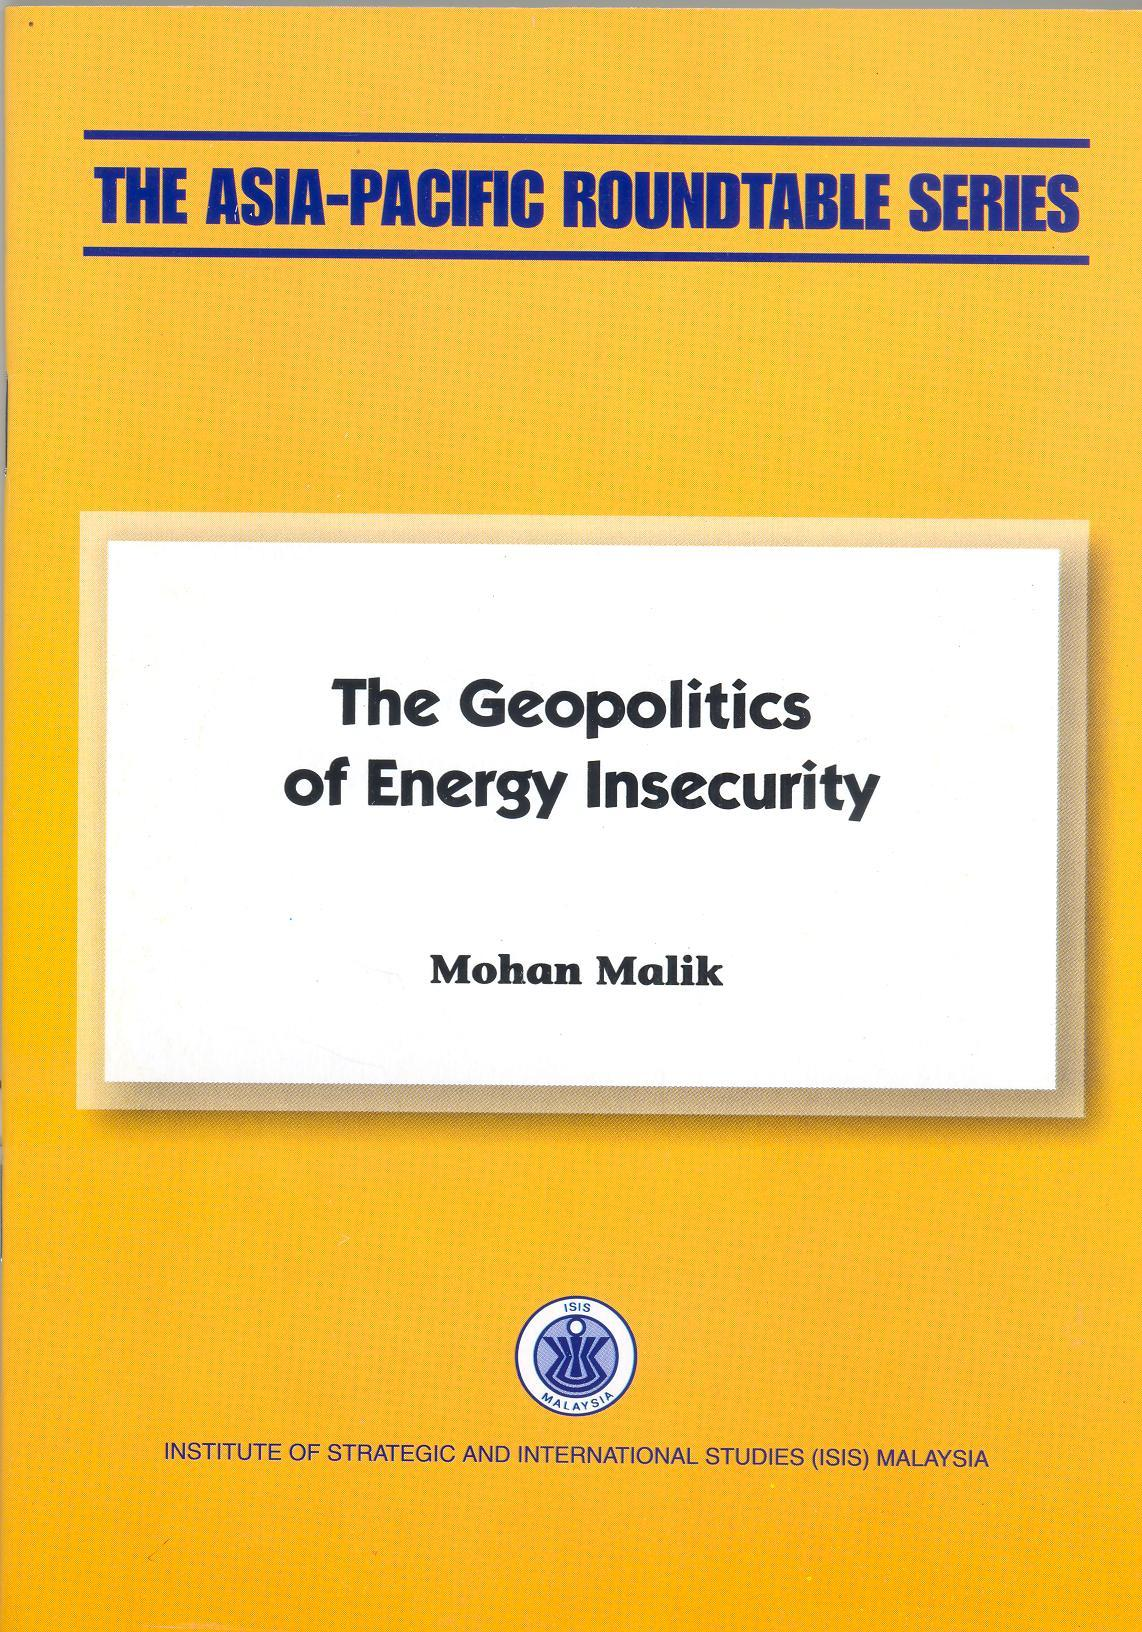 THE GEOPOLITICS OF ENERGY INSECURITY